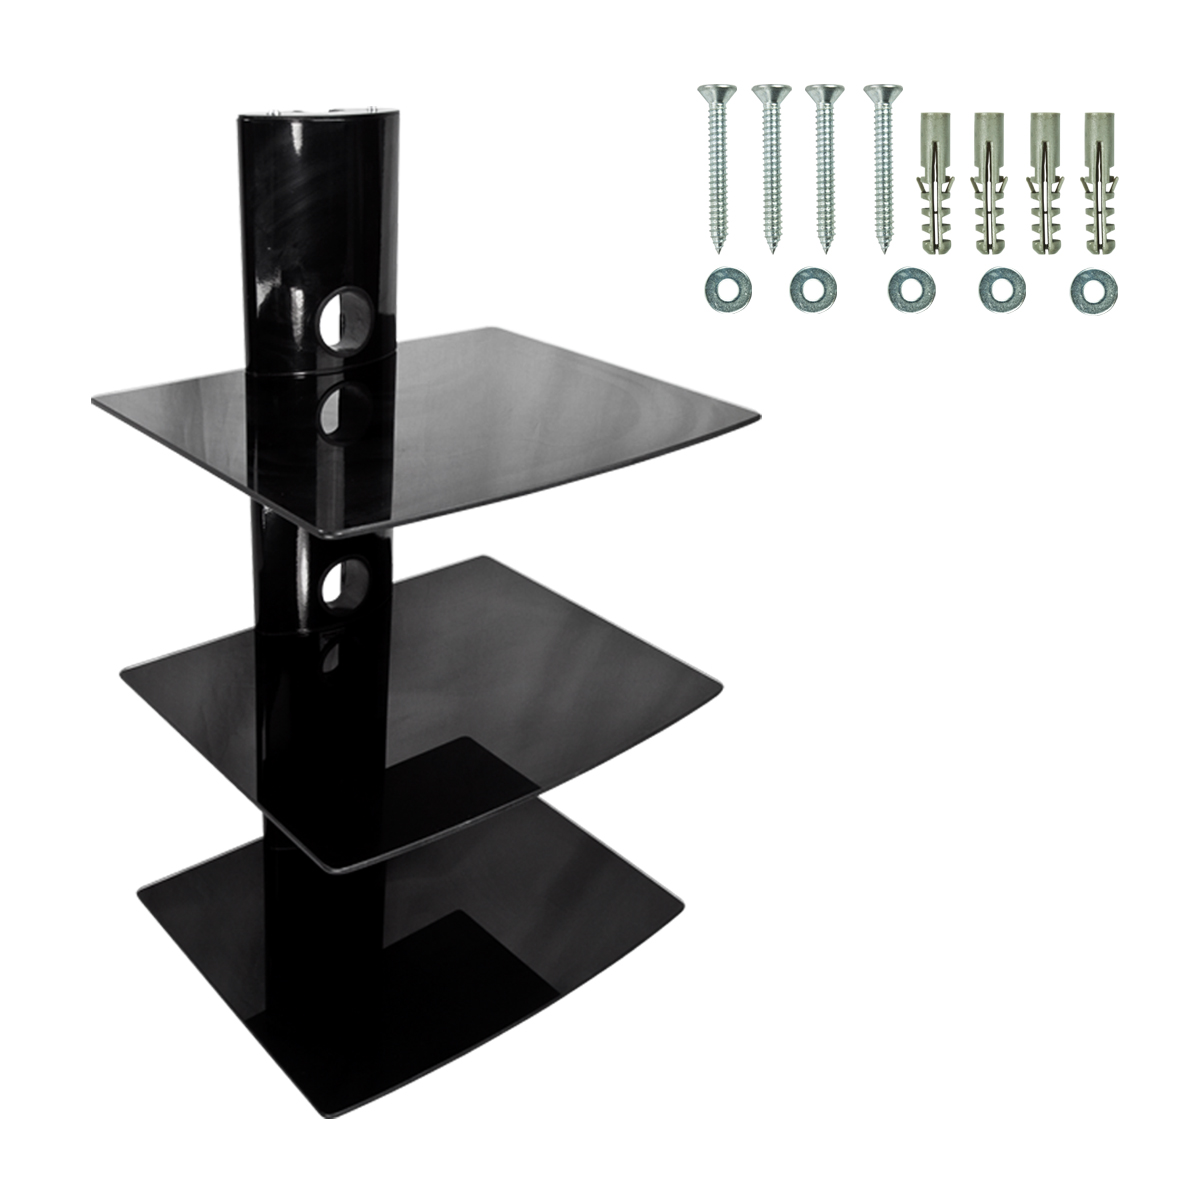 dvd player cable box wall mount shelf stand direct tv glass receiver hd 3 tier ebay. Black Bedroom Furniture Sets. Home Design Ideas